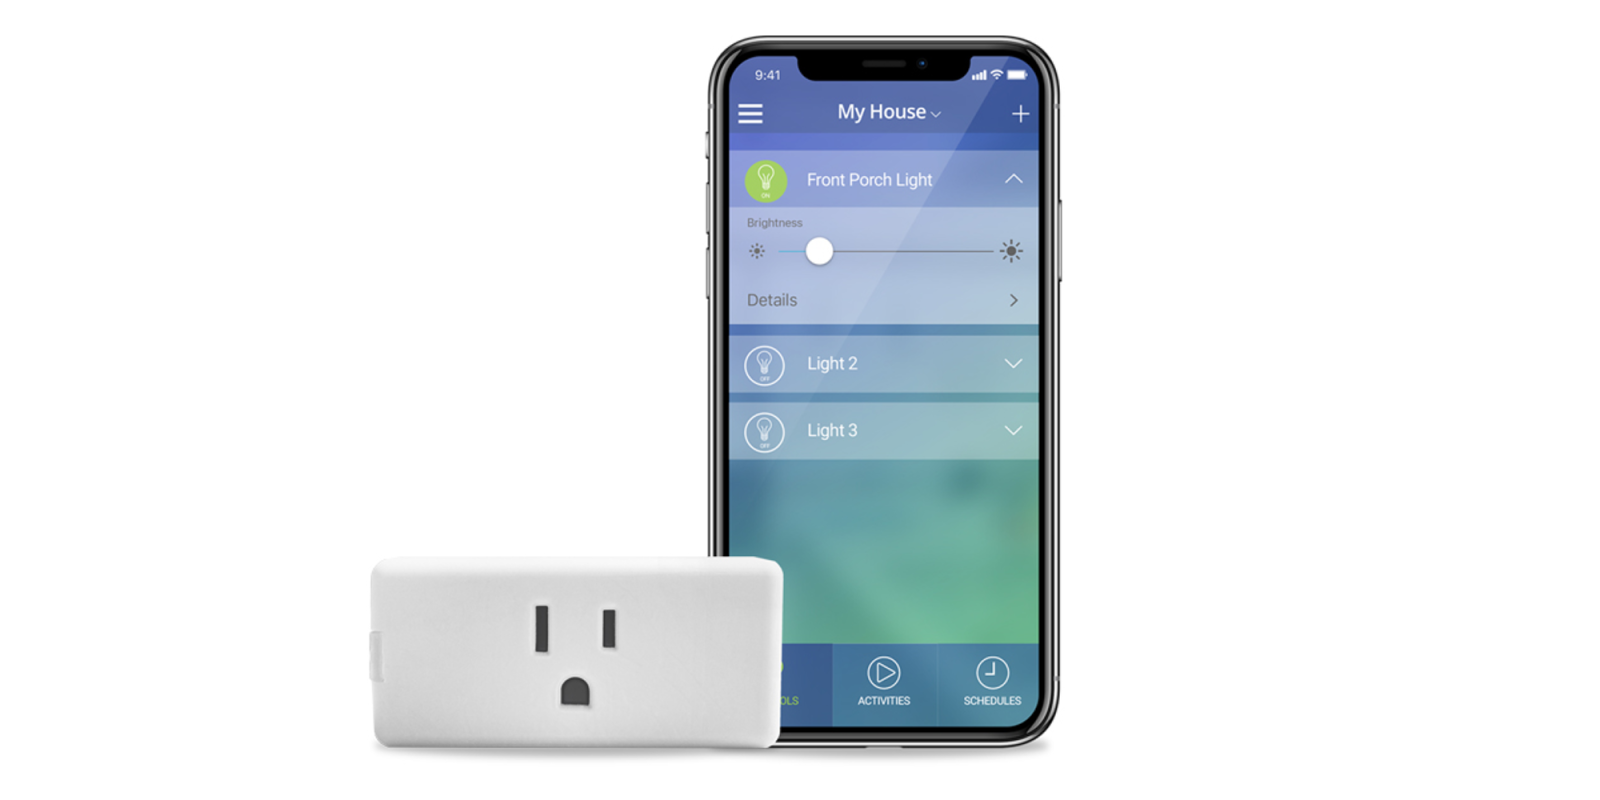 Leviton expands Decora smart home lineup with new Alexa